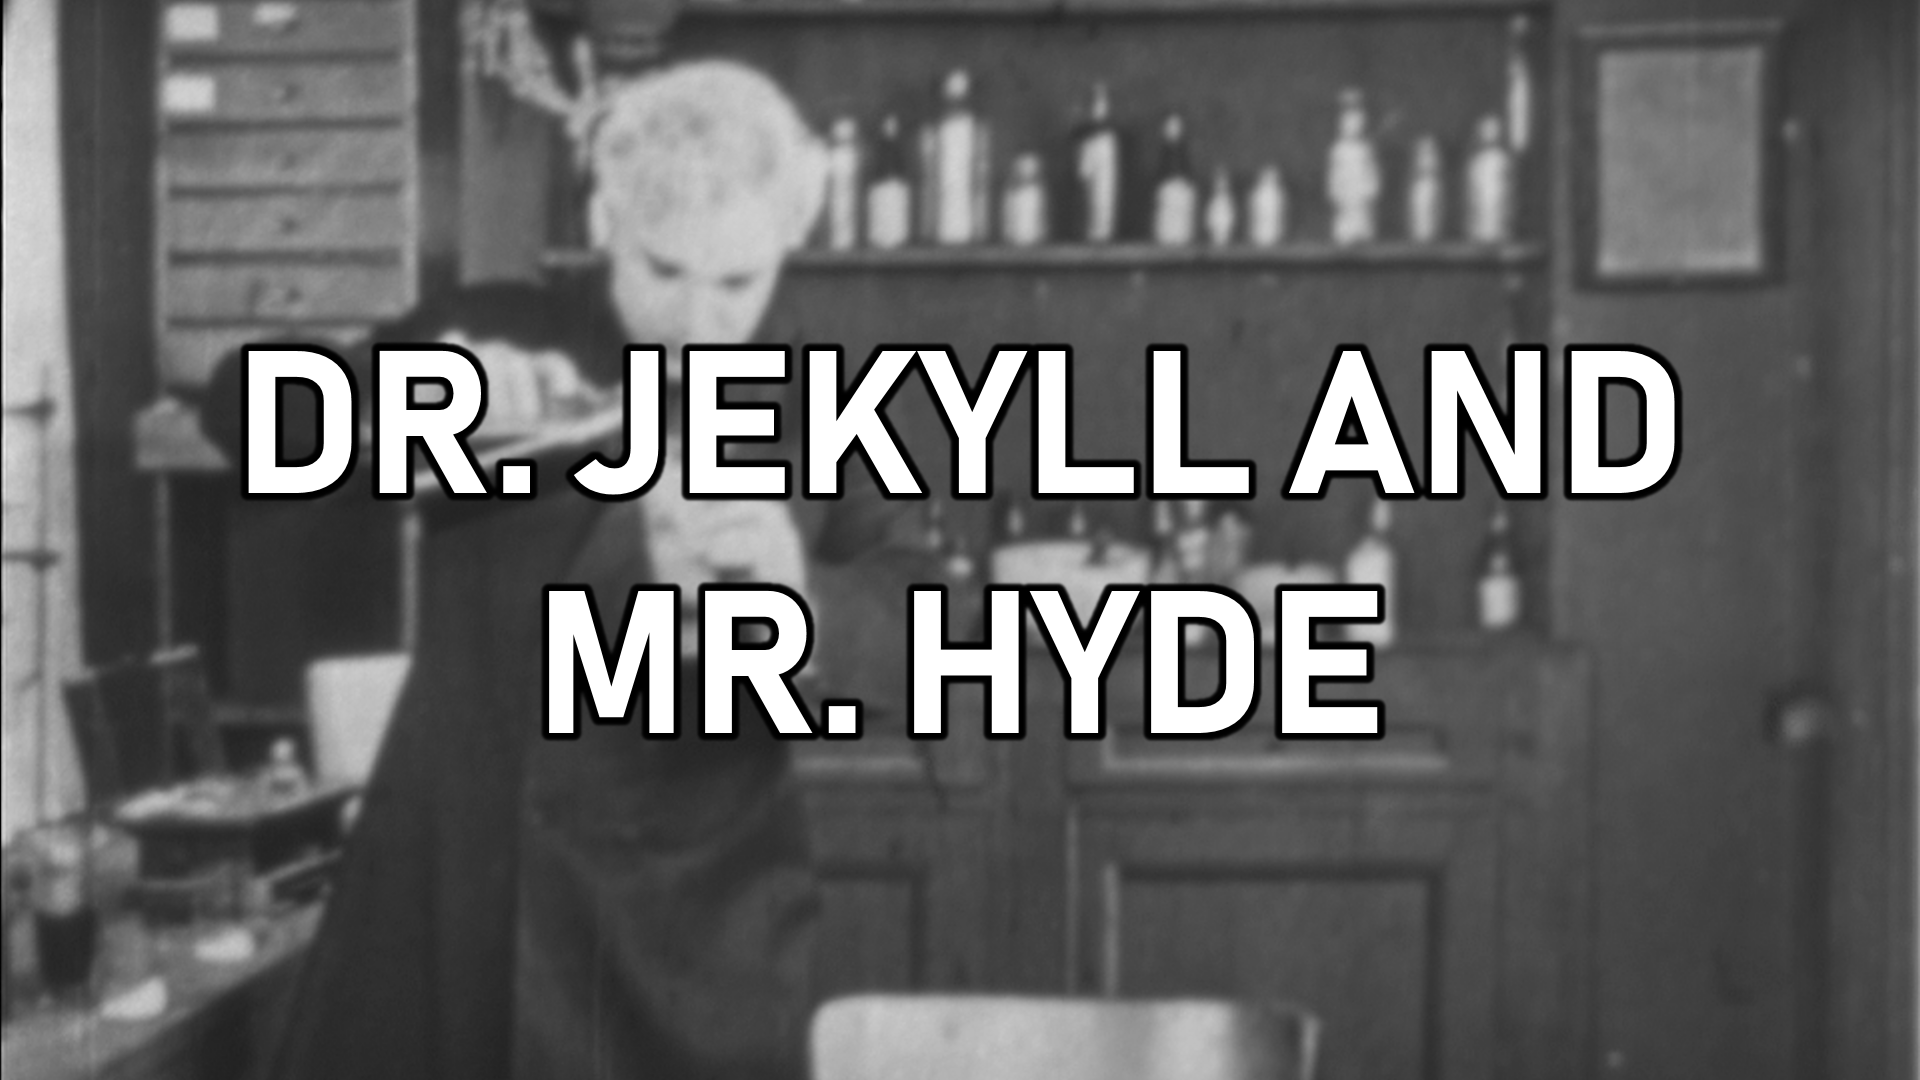 Dr. Jekyll and Mr. Hyde (James Cruze)